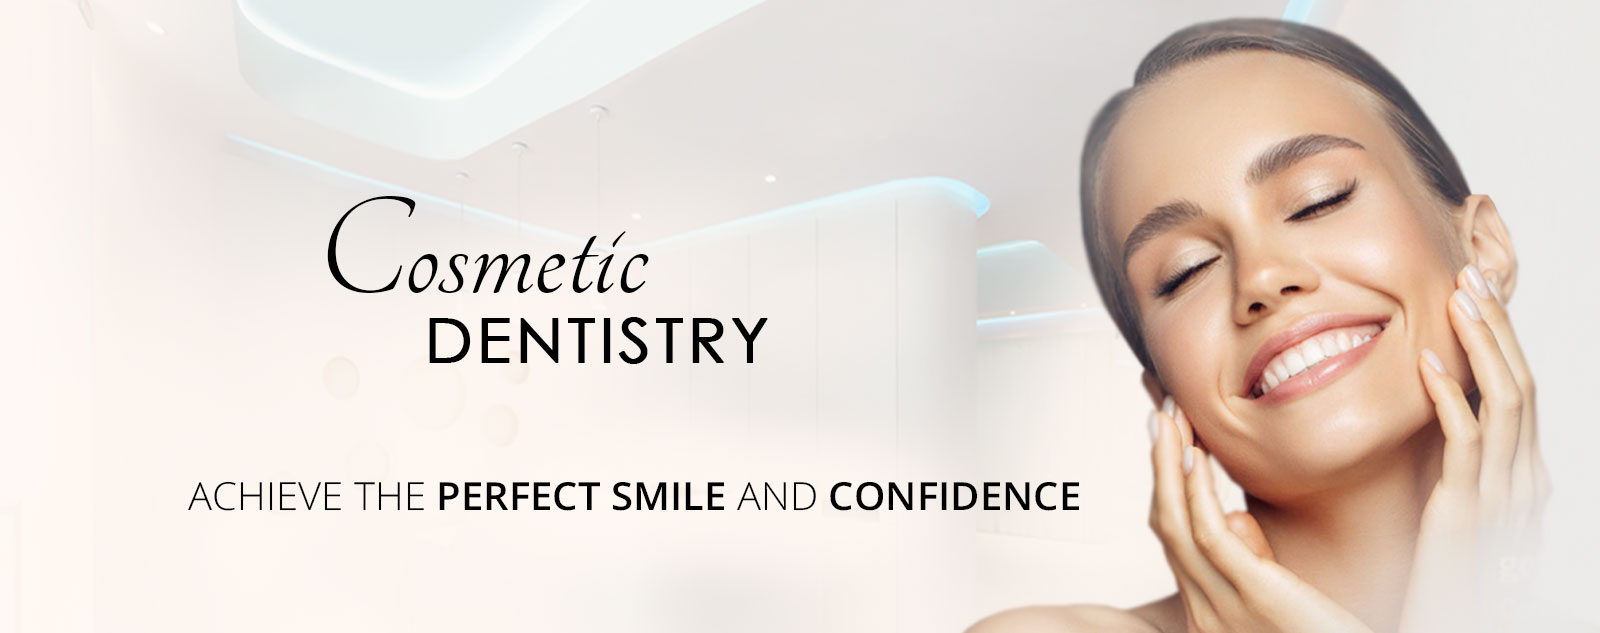 Smile Artists Dental Practice • Cosmetic Dentistry Kingston UK